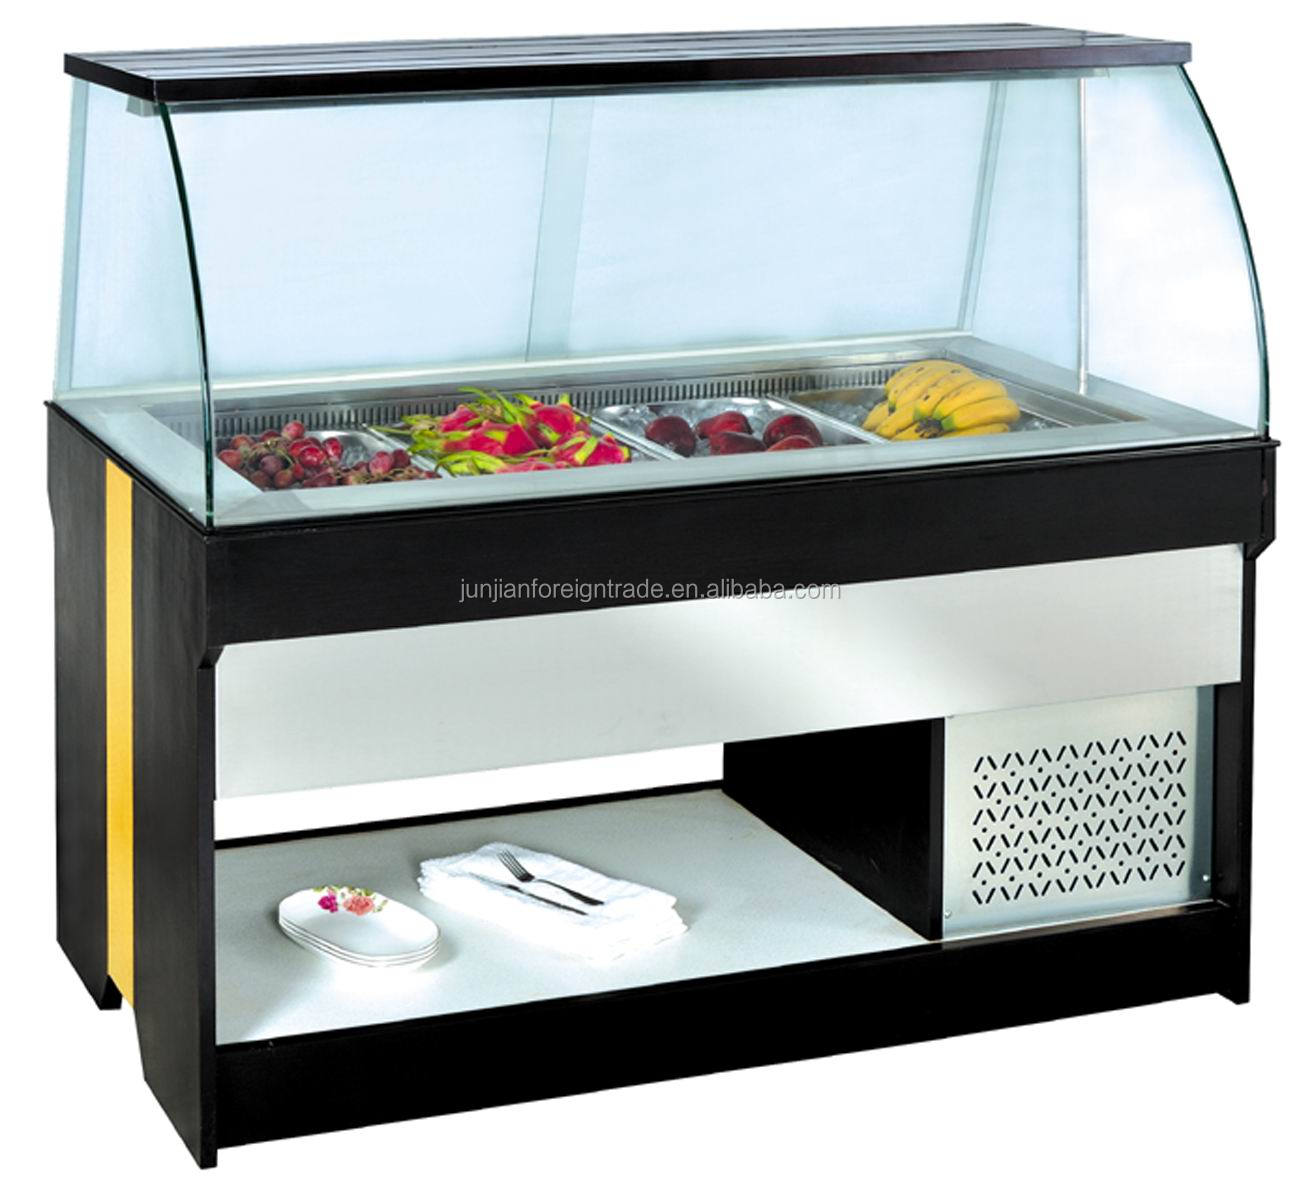 commercial salad bar display chiller salad display. Black Bedroom Furniture Sets. Home Design Ideas